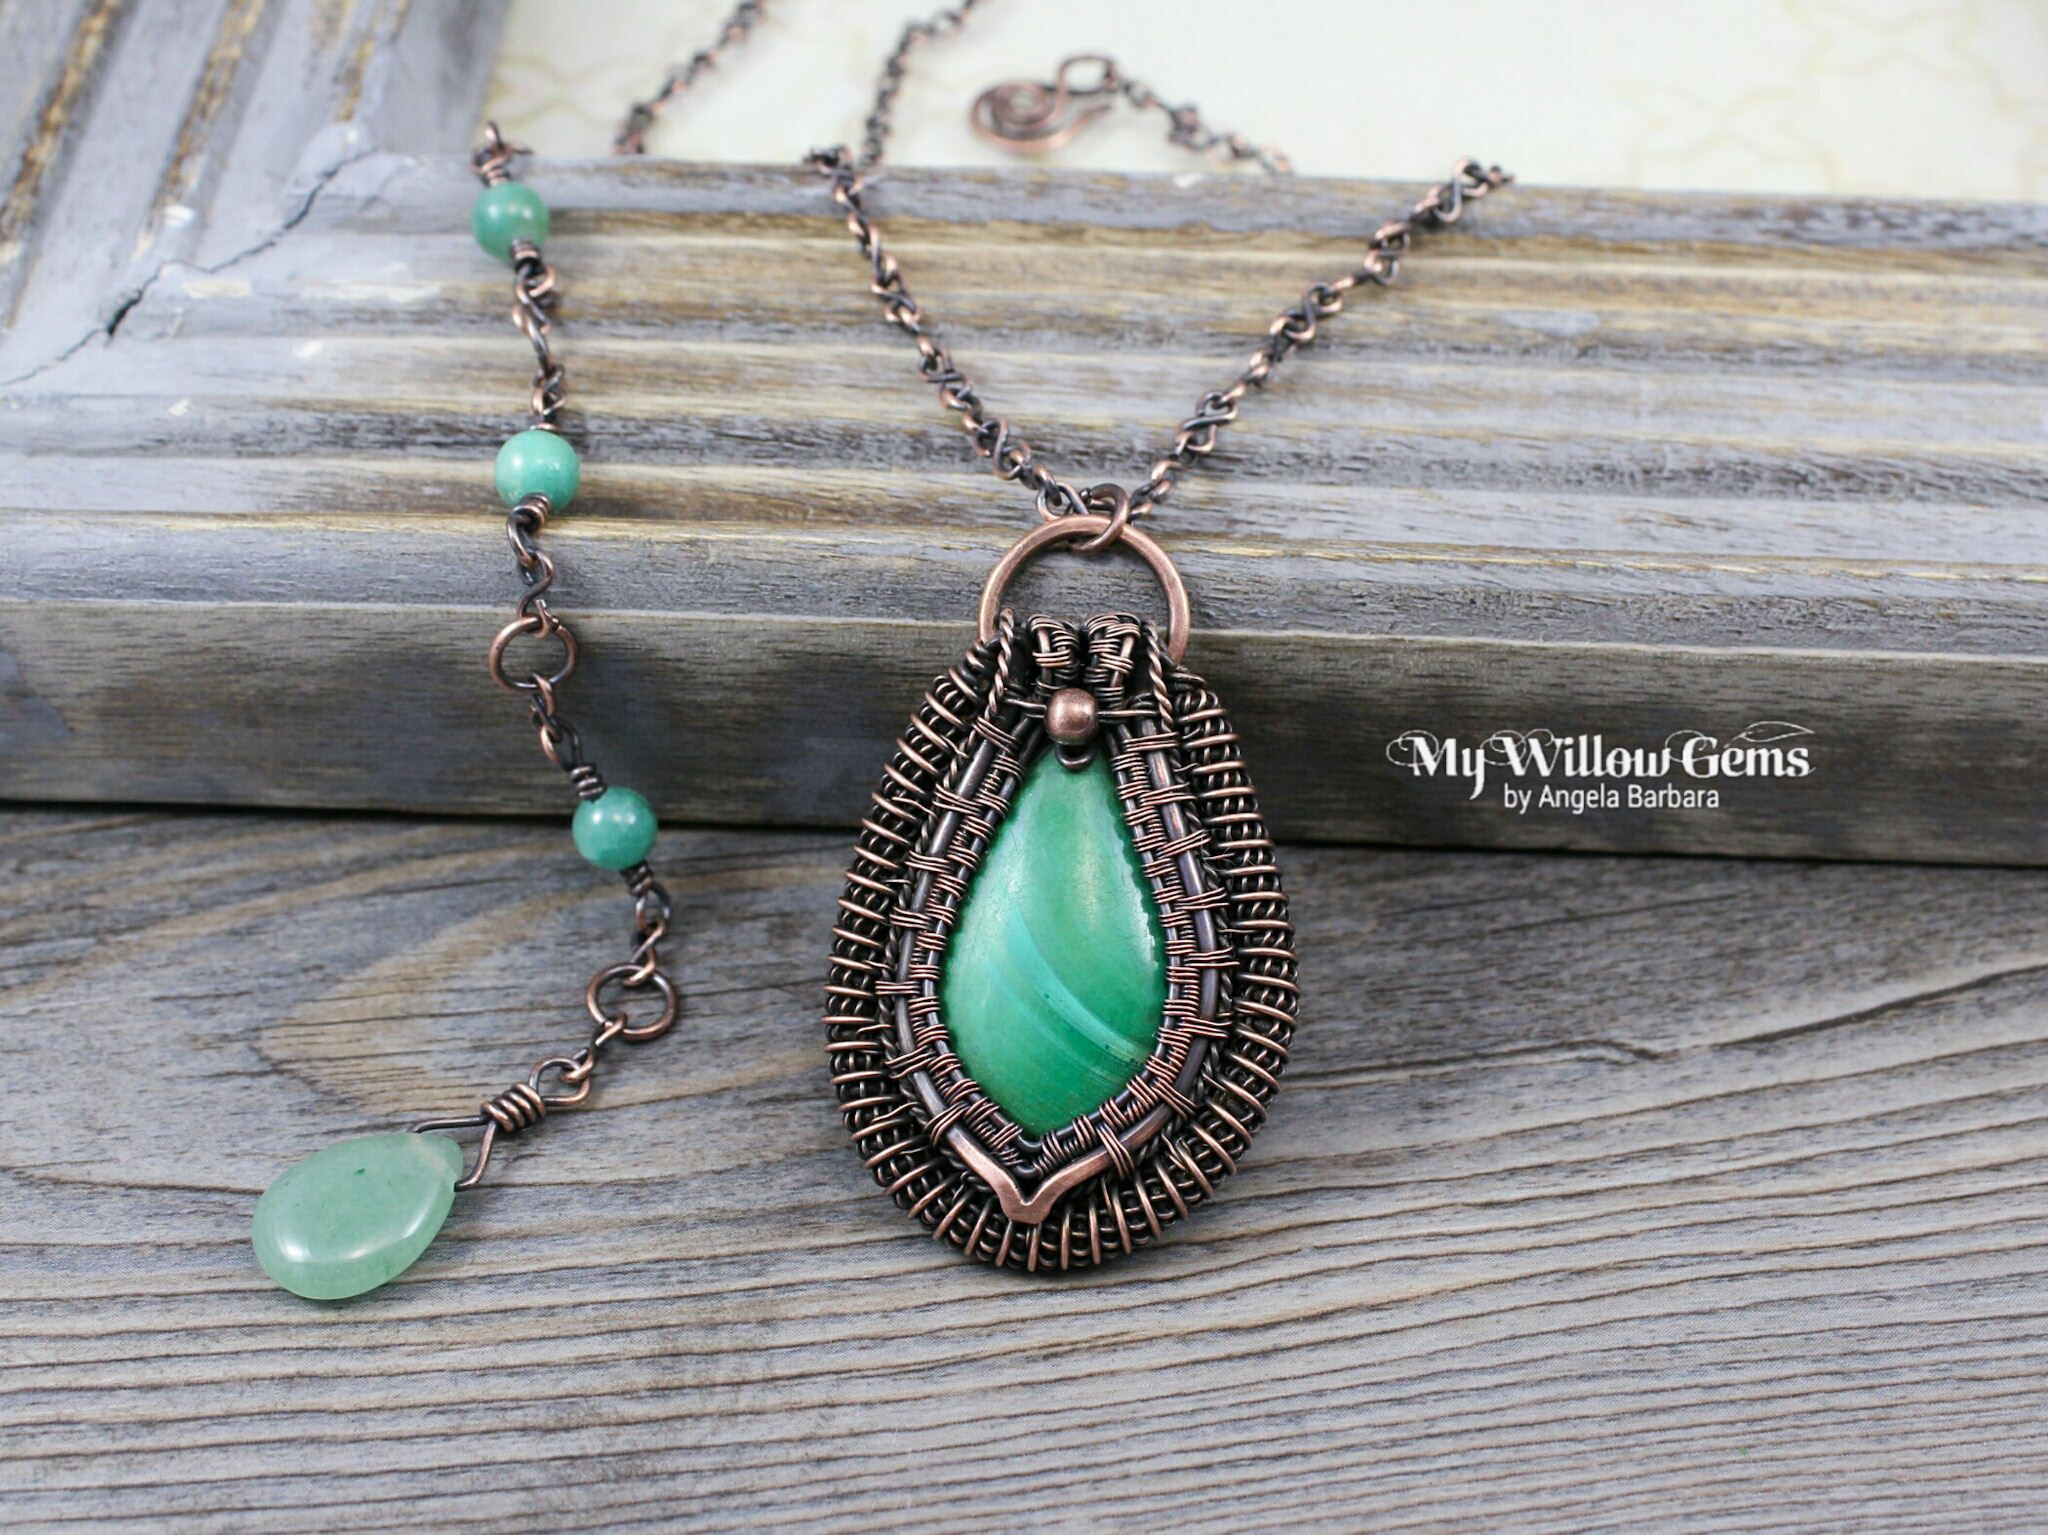 "https://flic.kr/p/EtsdJq | Wire Wrapped Malachite Necklace | OOAK Copper and Gemstone Pendant with Handmade Chain.  Approximate pendant size: 1.3""w X 2.0""l with hoop bail. Chain Length: 18"" - 22"" adjustable ."